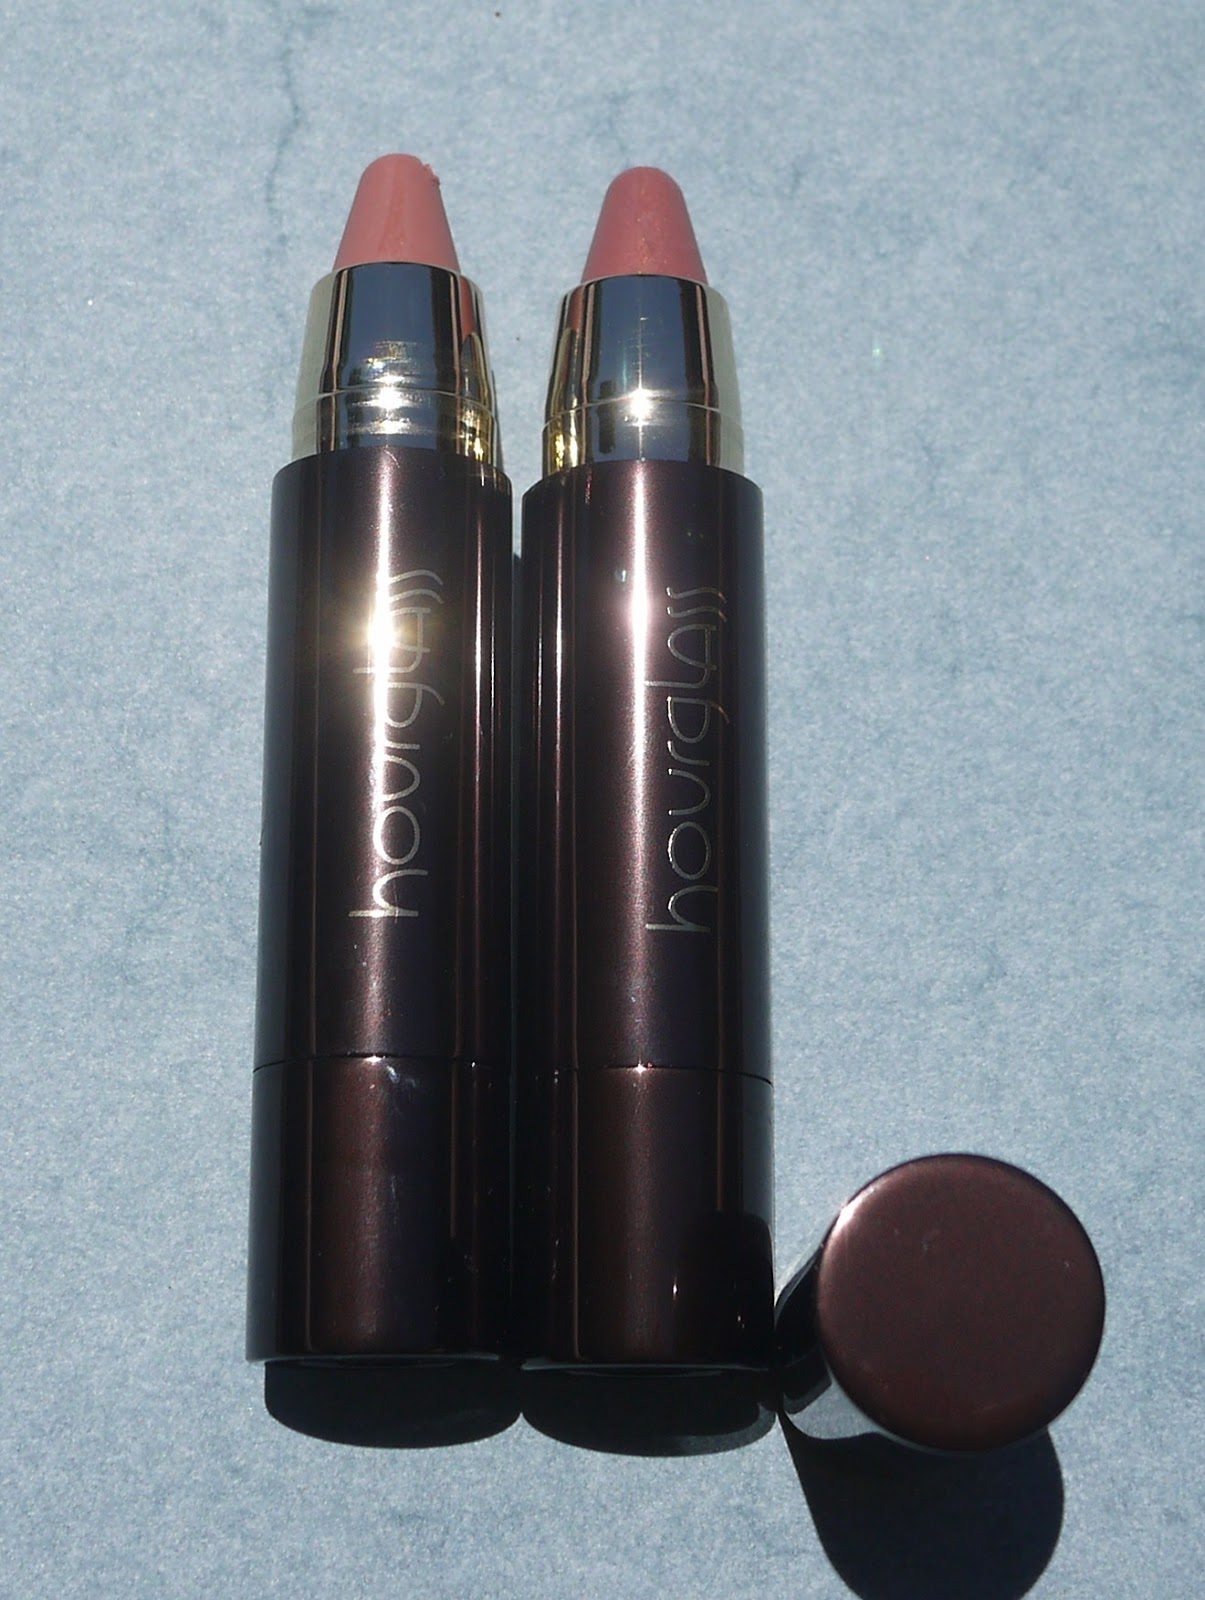 Hourglass Cosmetics Femme Nude Lip Stylo - swatches